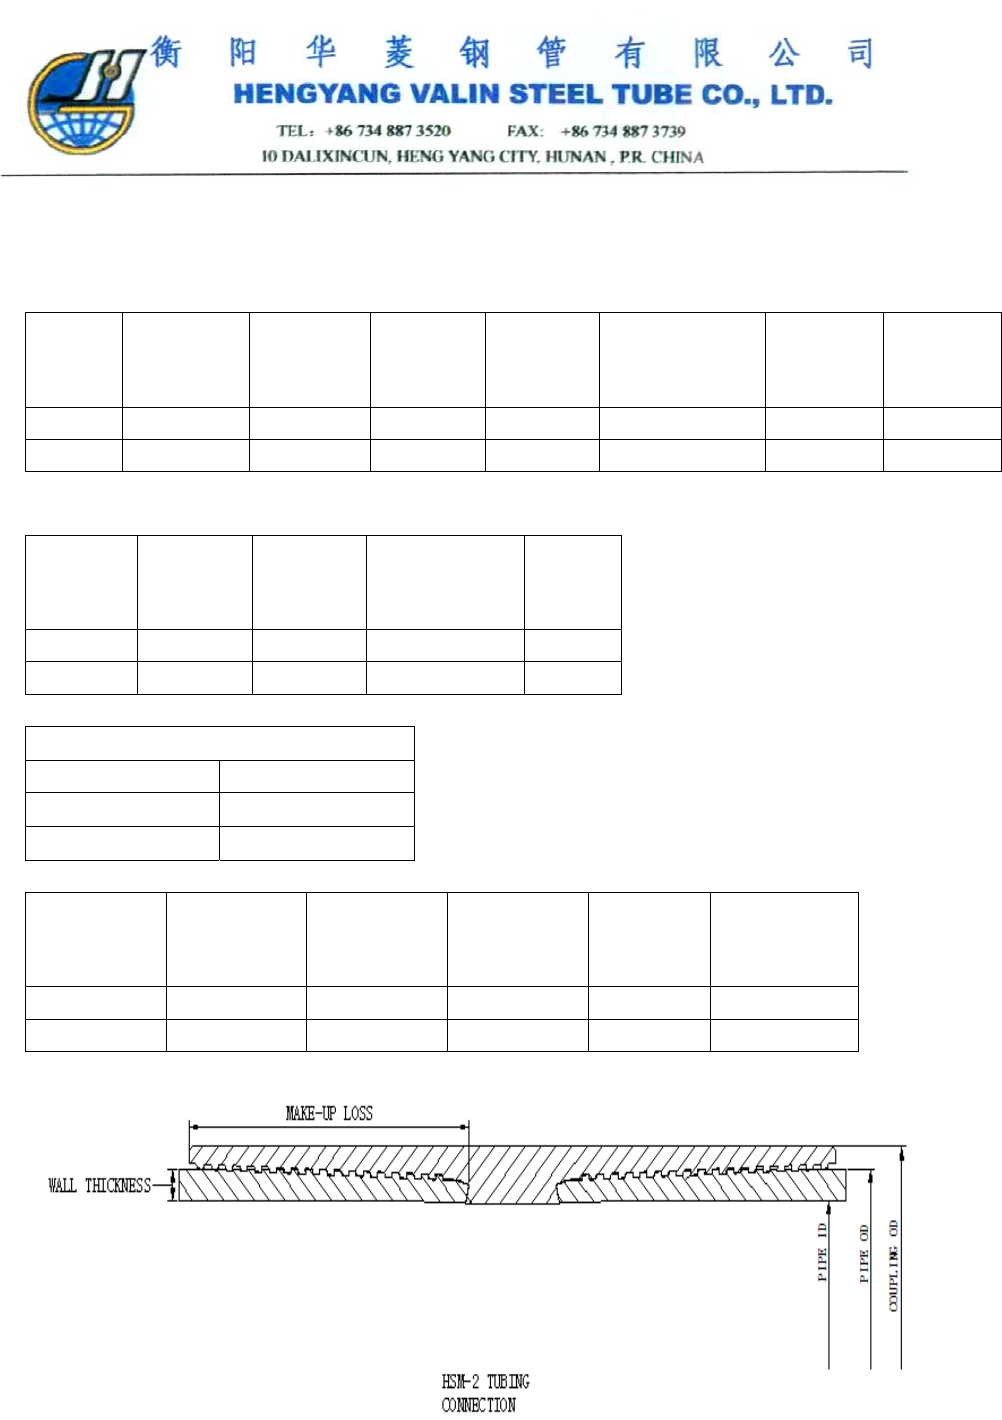 Examples Of Tubing Tally Spreadsheet Within Tubing Tally Spreadsheet Sample